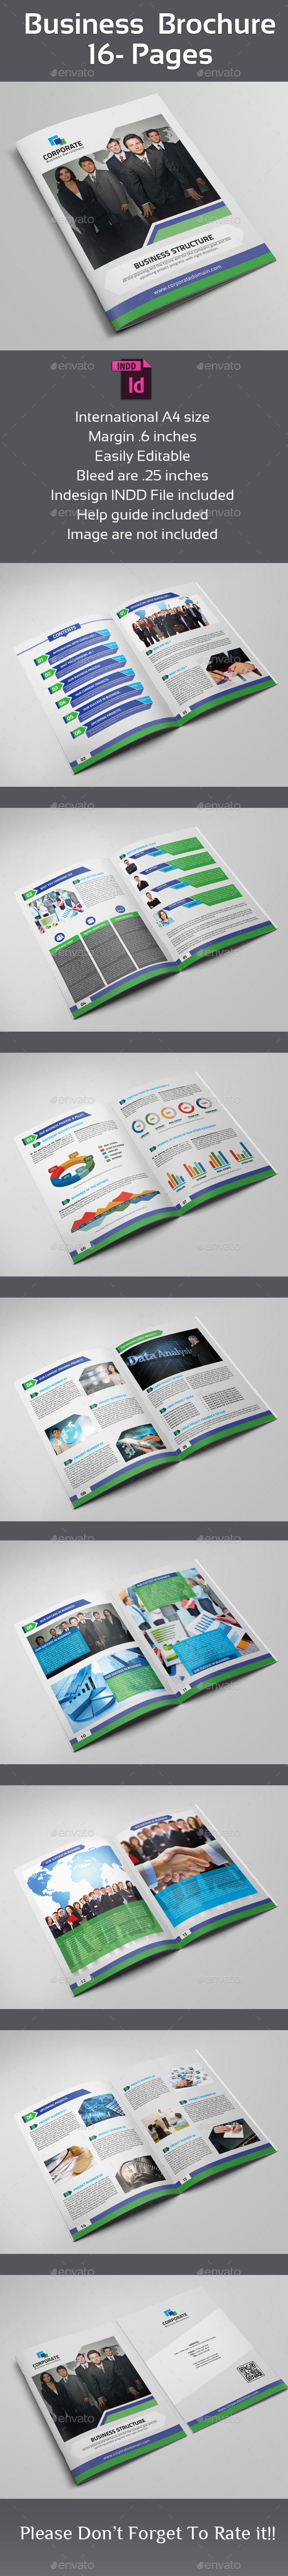 GraphicRiver Business Brochure- 16 Pages 8853492